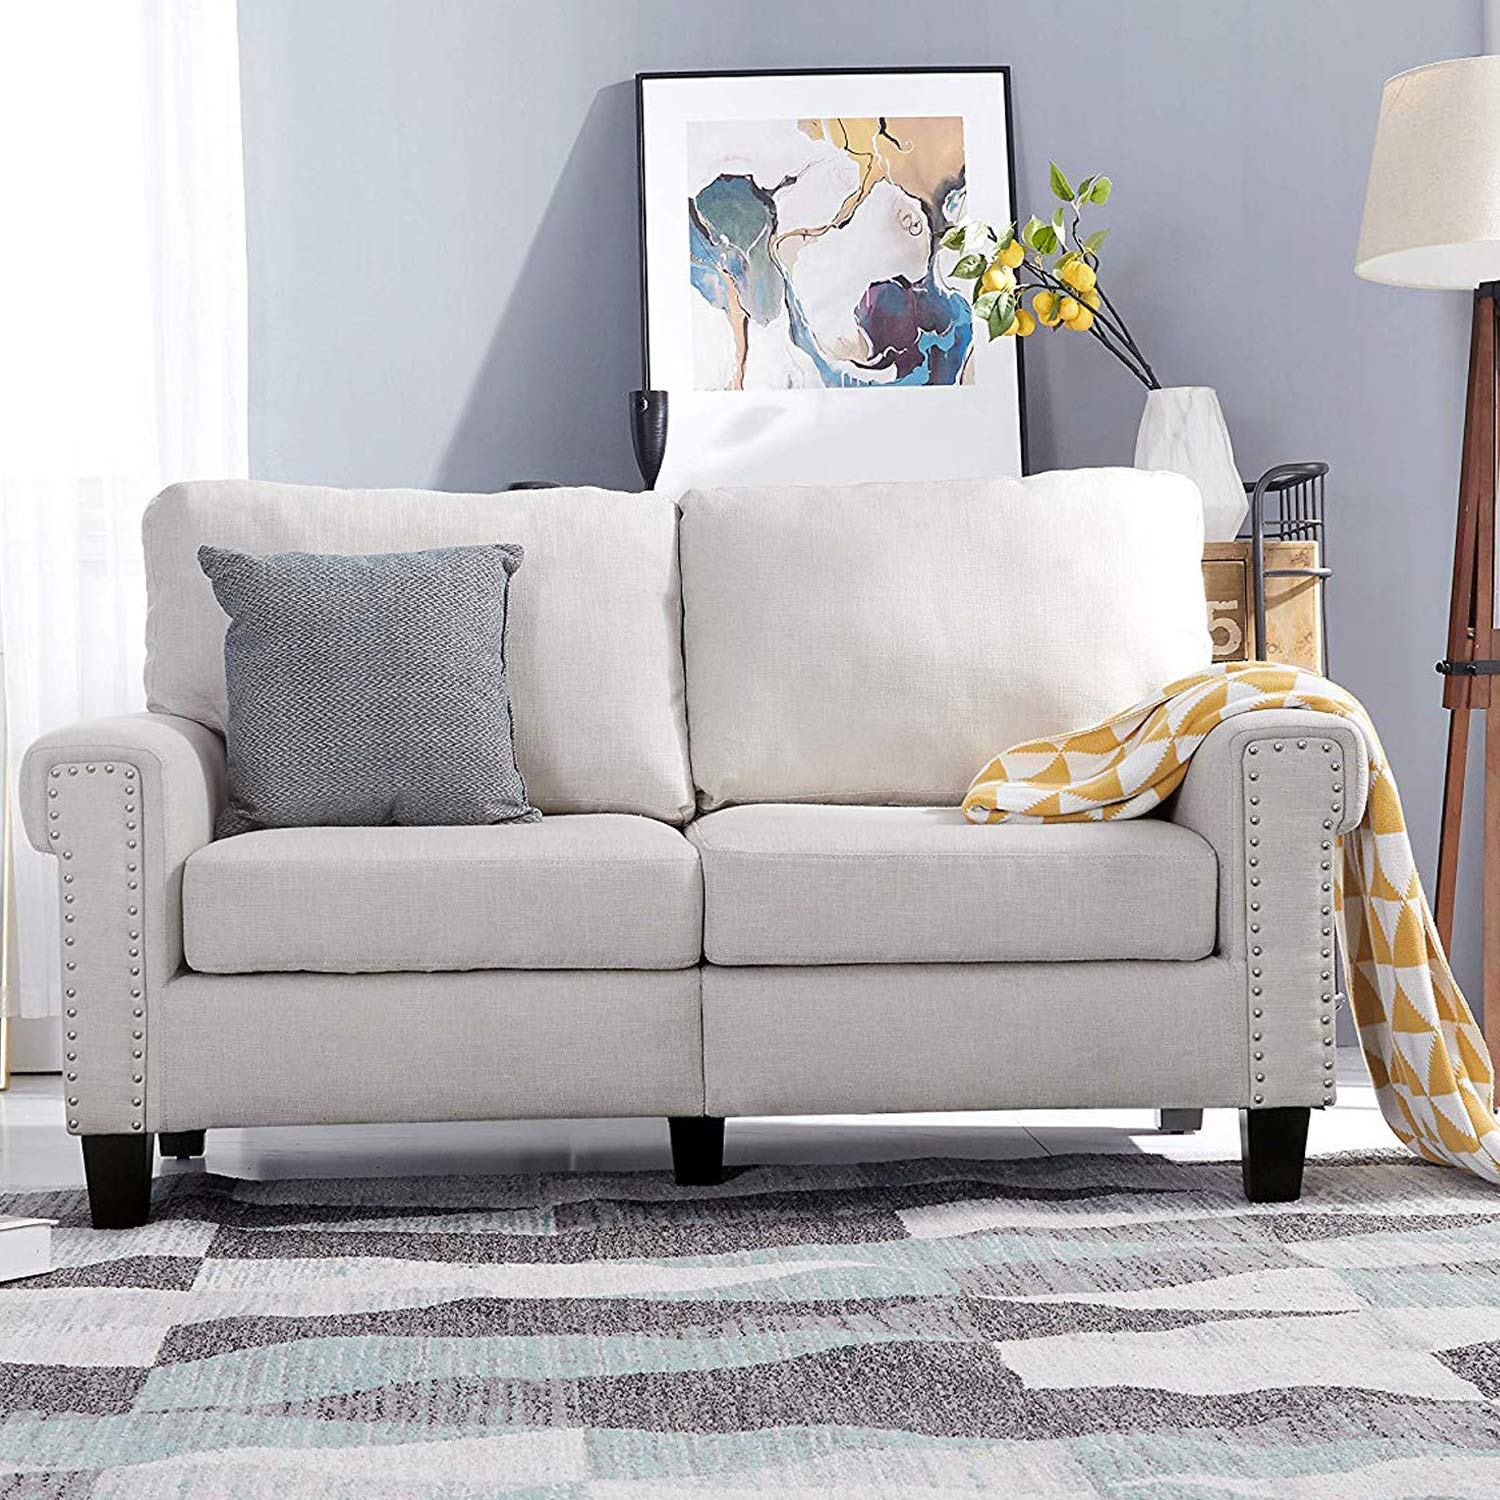 Top Space Loveseat Couch Upholstered Modern 2-Seat Sofa Simple Style Arm Chair Linen Fabric Furniture Living Room(White) by Top Space